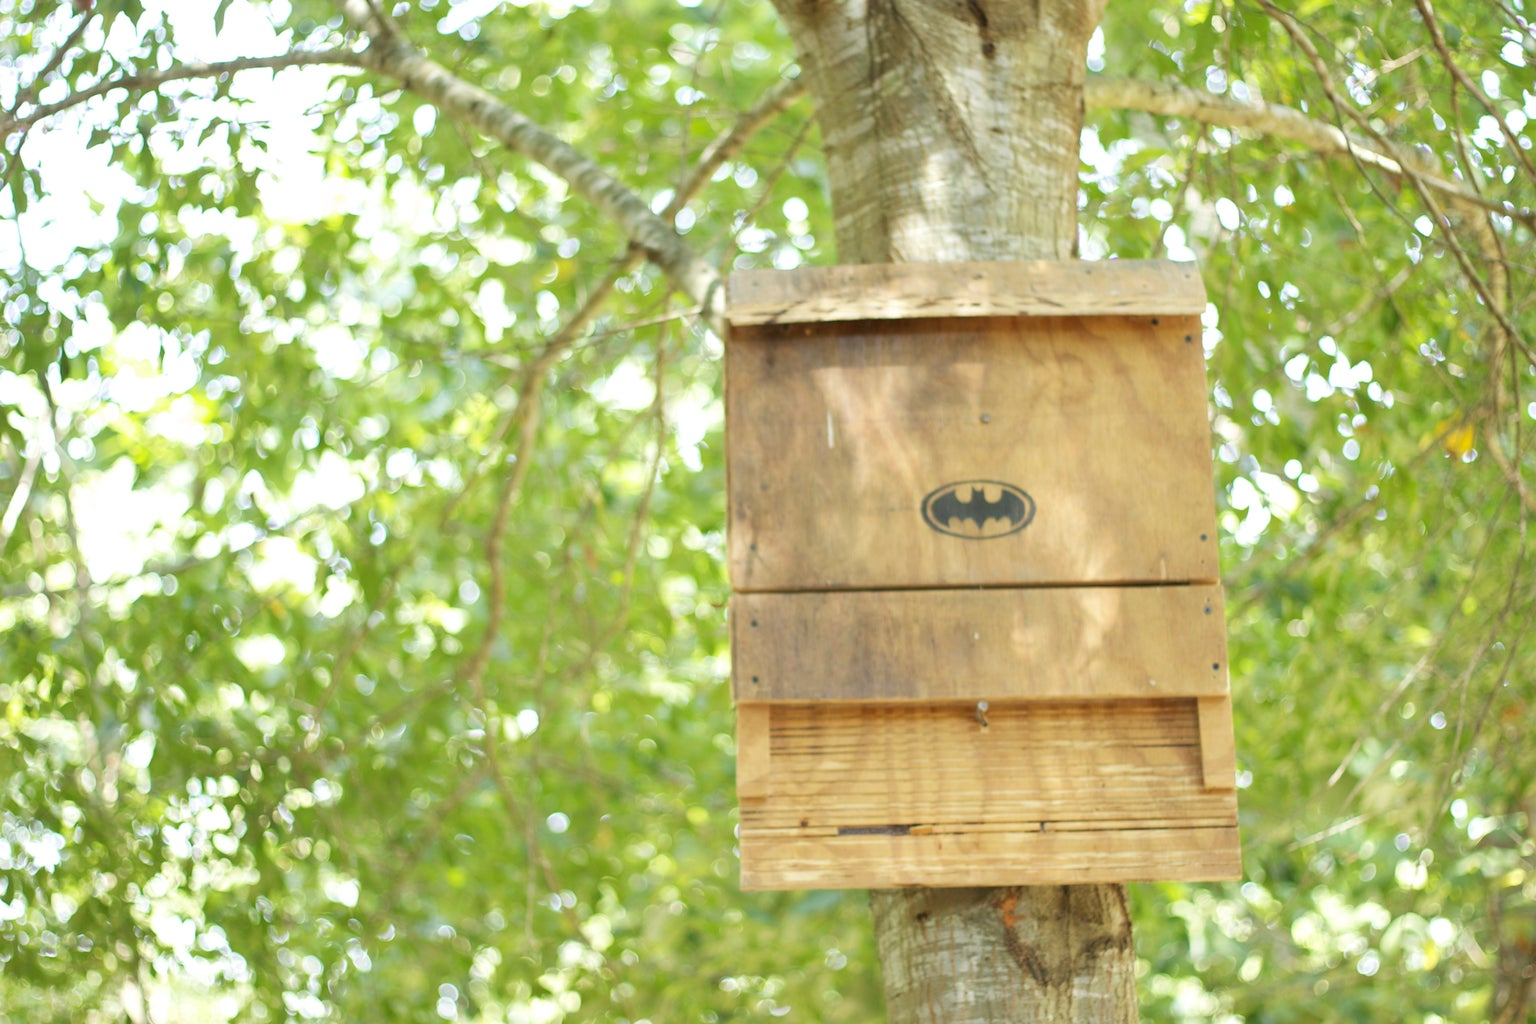 The Bat House: a Green, Energy Efficient Insect Repellant